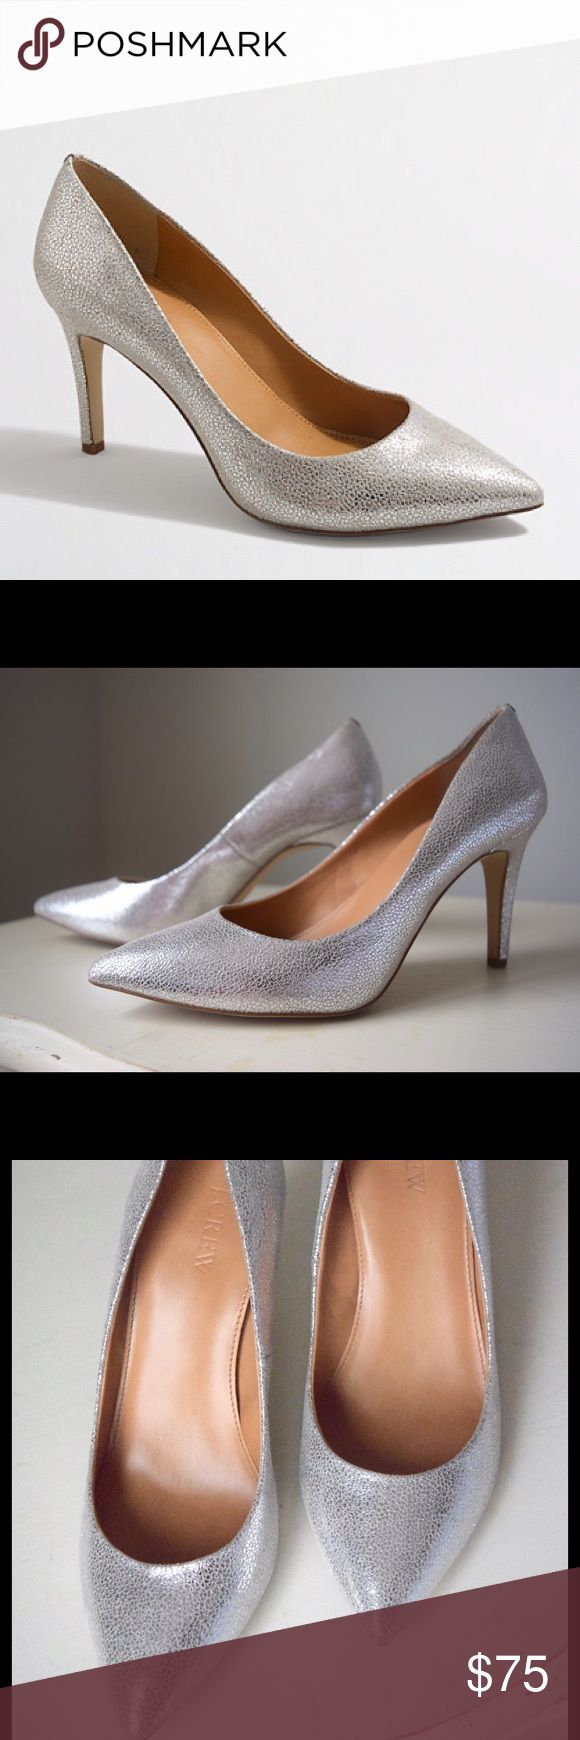 "J.Crew Factory Isabelle Crackled Metallic Pumps Lightly worn metallic pumps. Comfortable 3 1/2"" heel. Man-made materials. Excellent used condition. J. Crew Factory Shoes Heels"